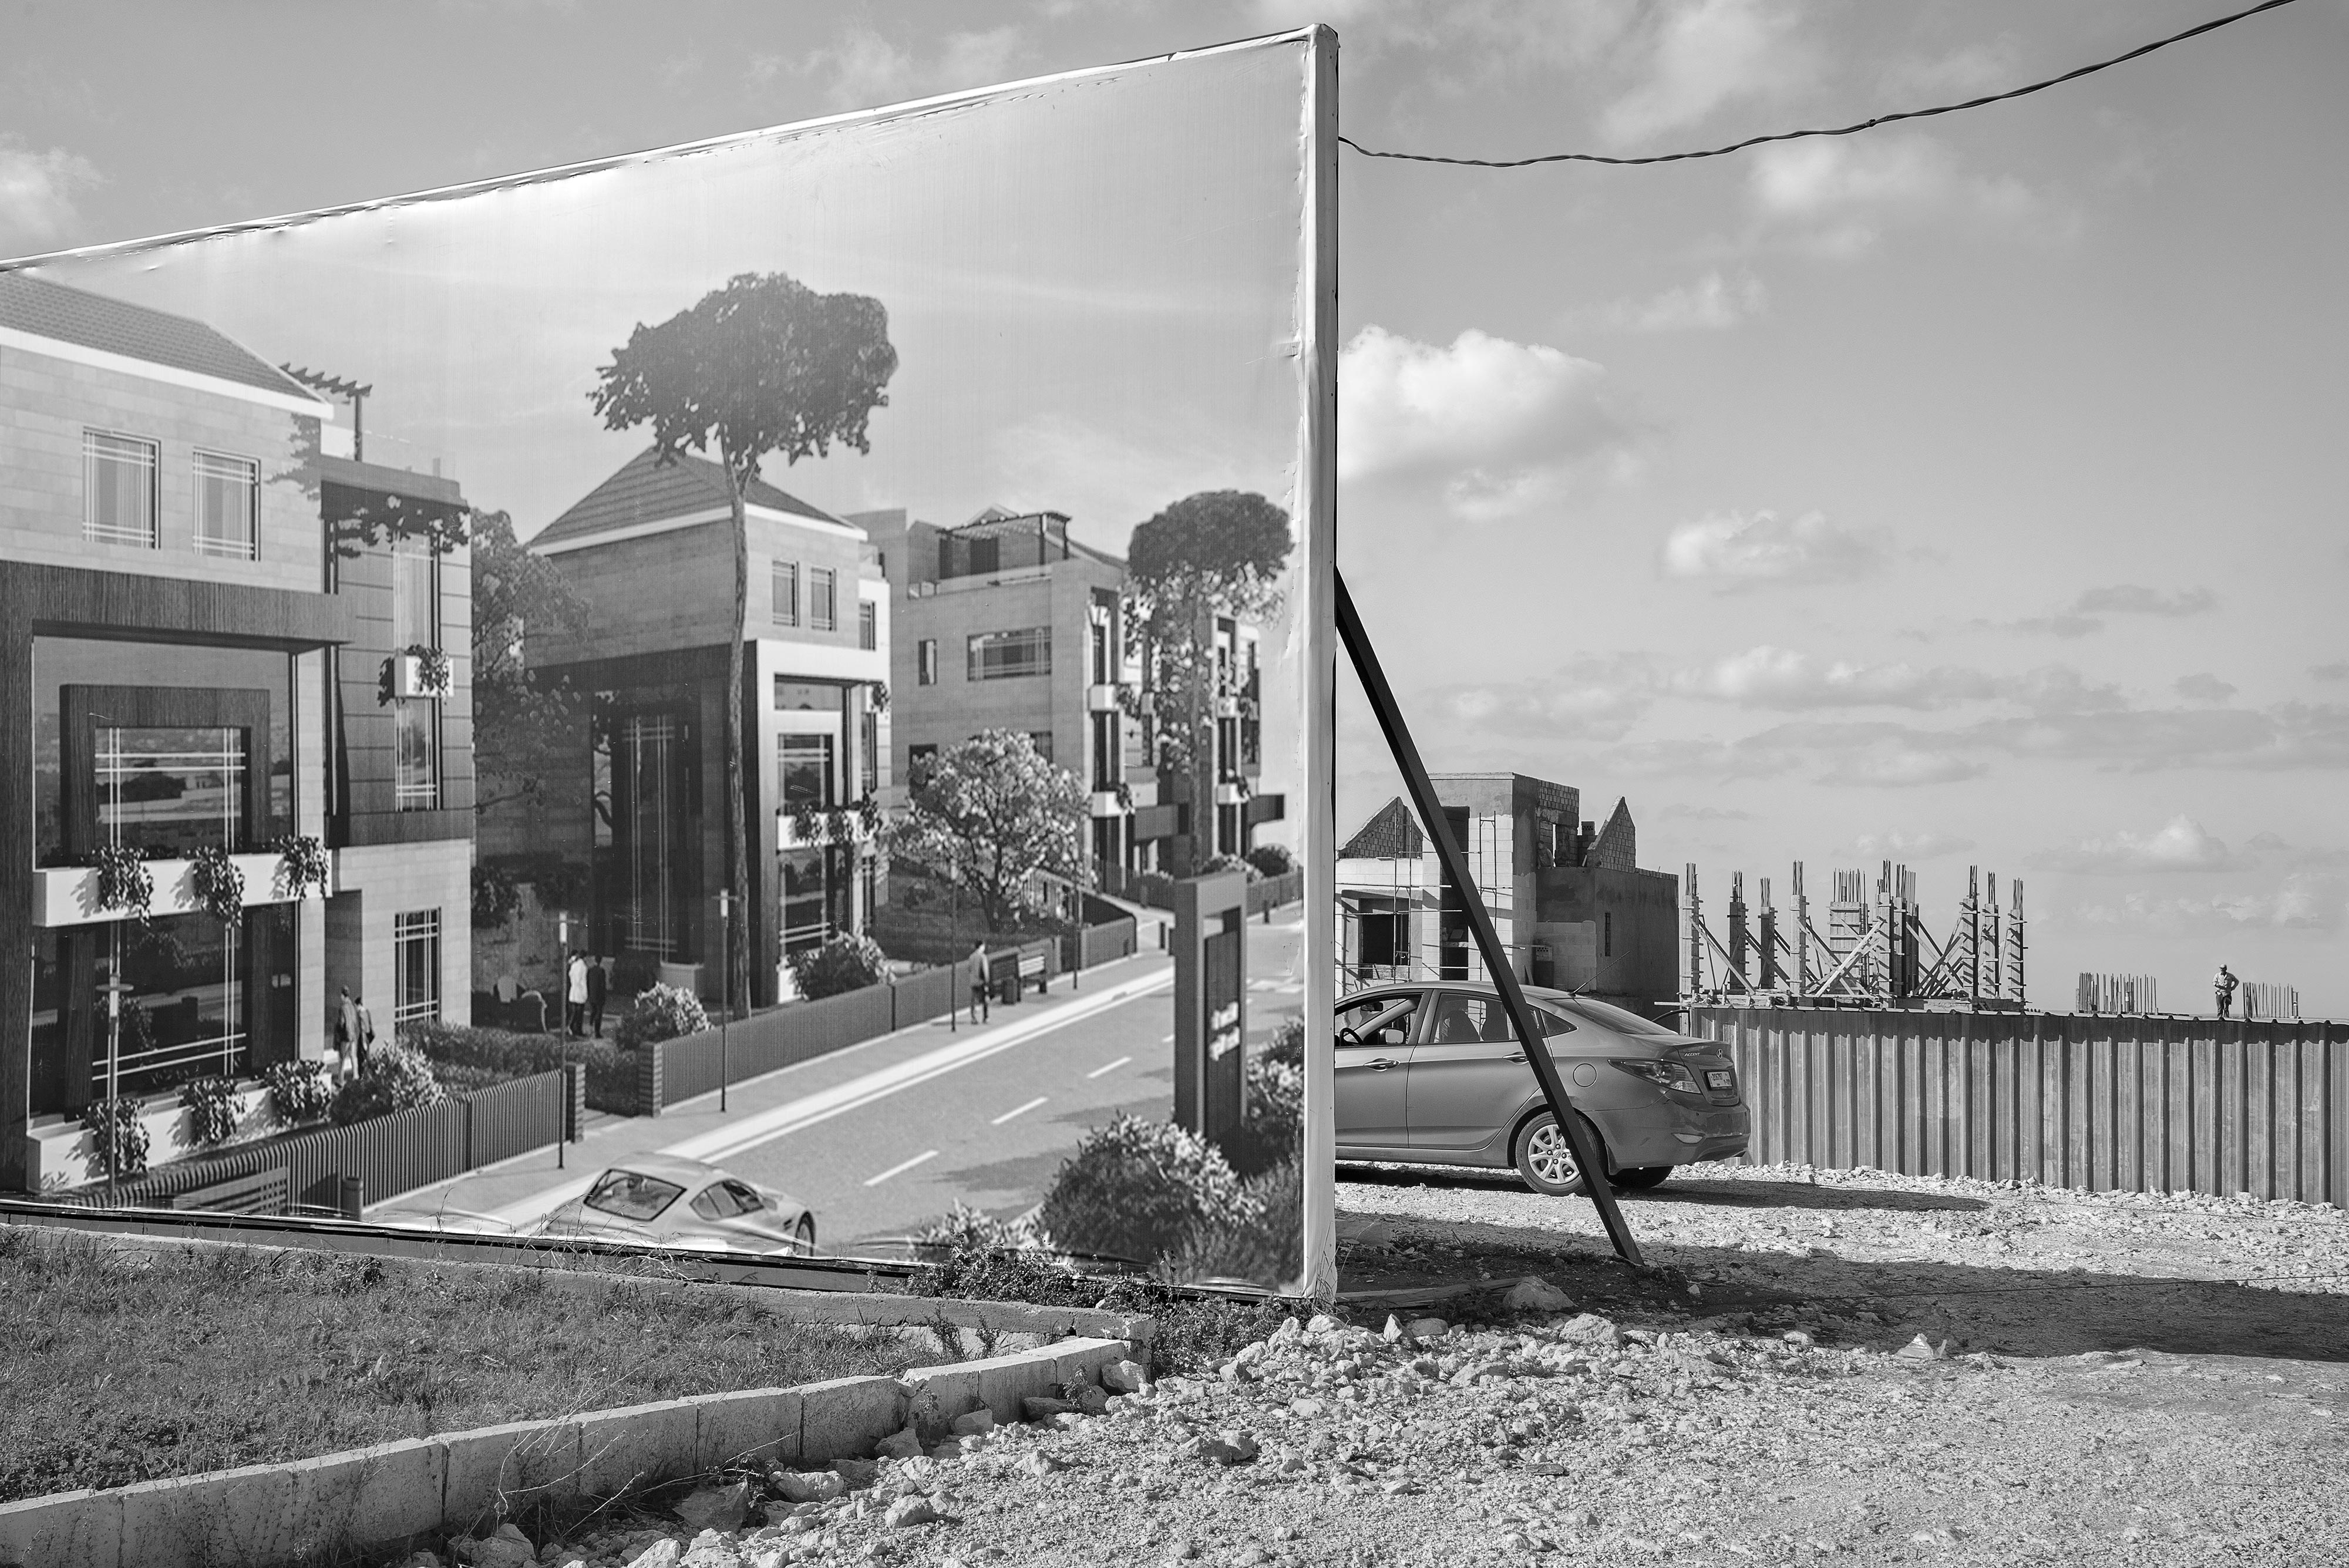 Manal Abu-Shaheen<br>Untitled. North of Beirut, Lebanon<br>2016<br>Archival Fiber Inkjet Print<br>16 x 24 in